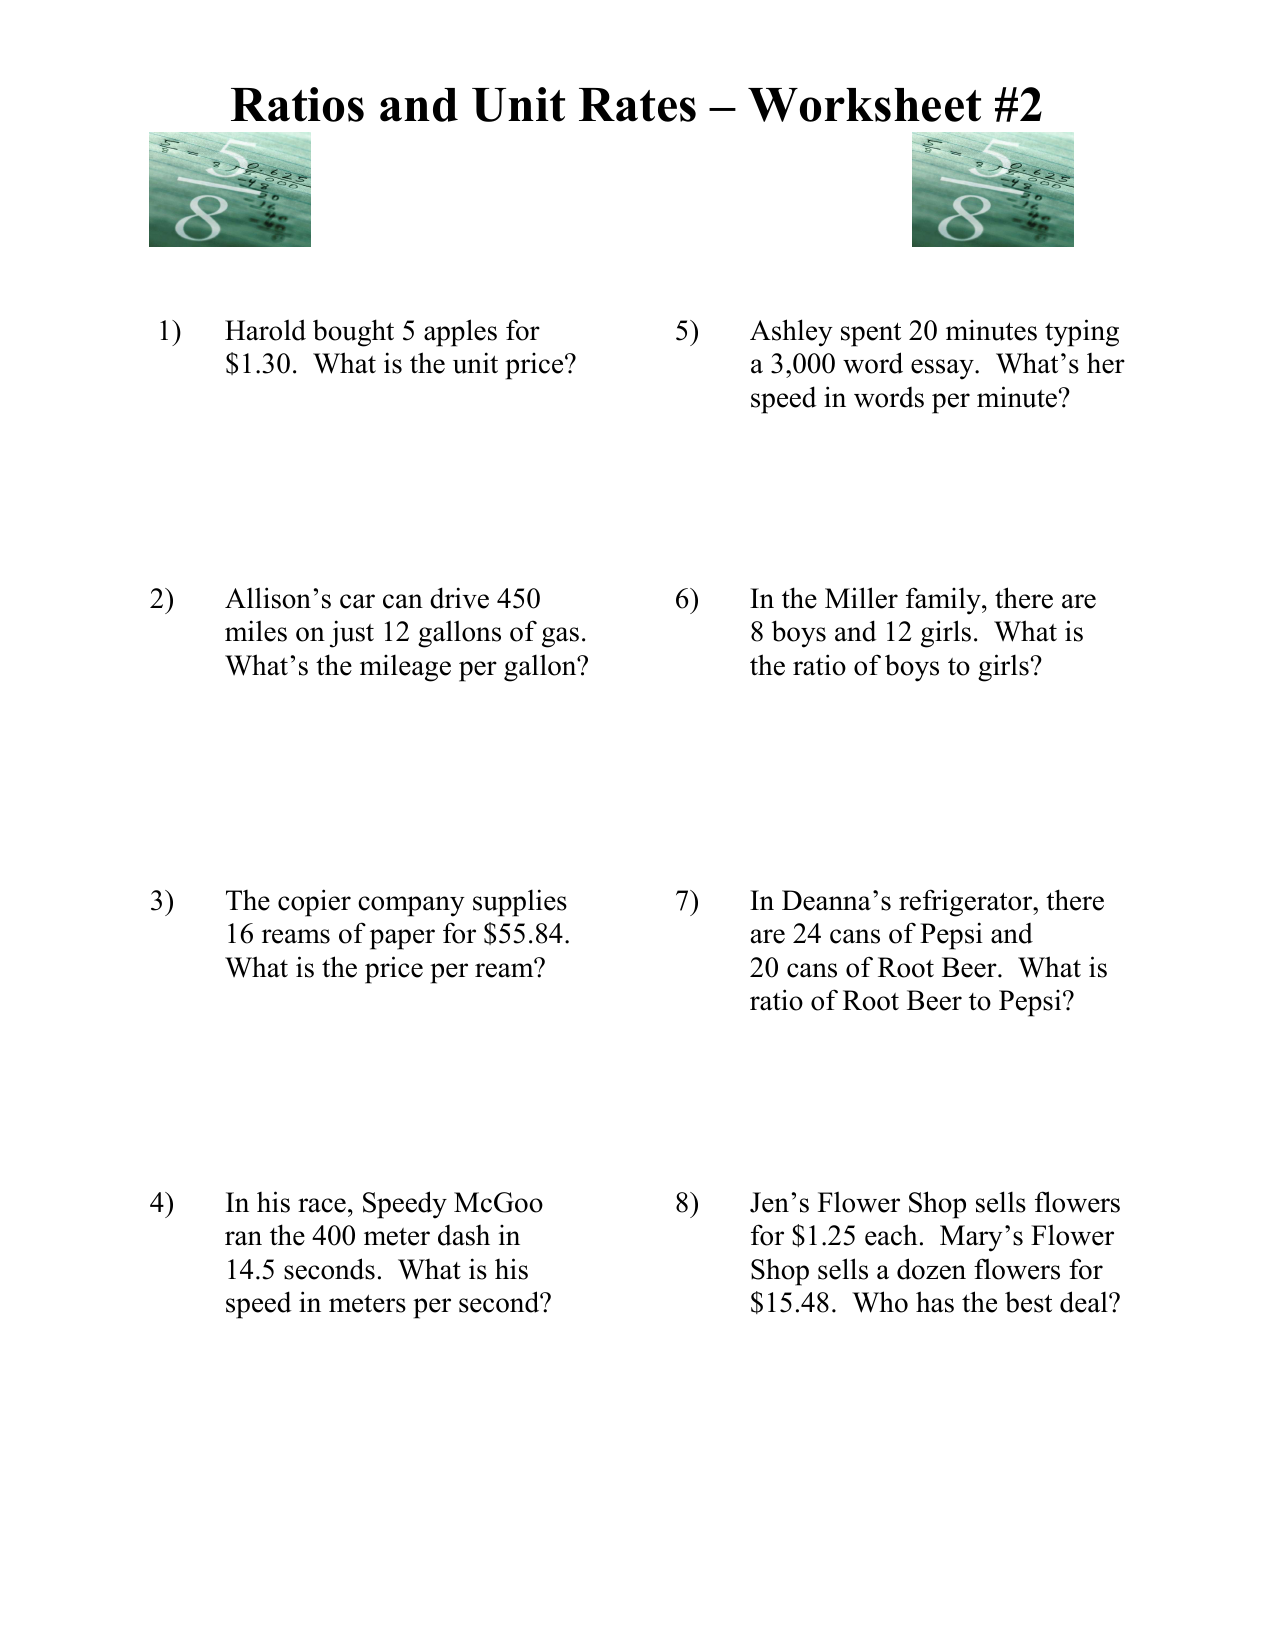 Ratios And Unit Rates Worksheet - Promotiontablecovers